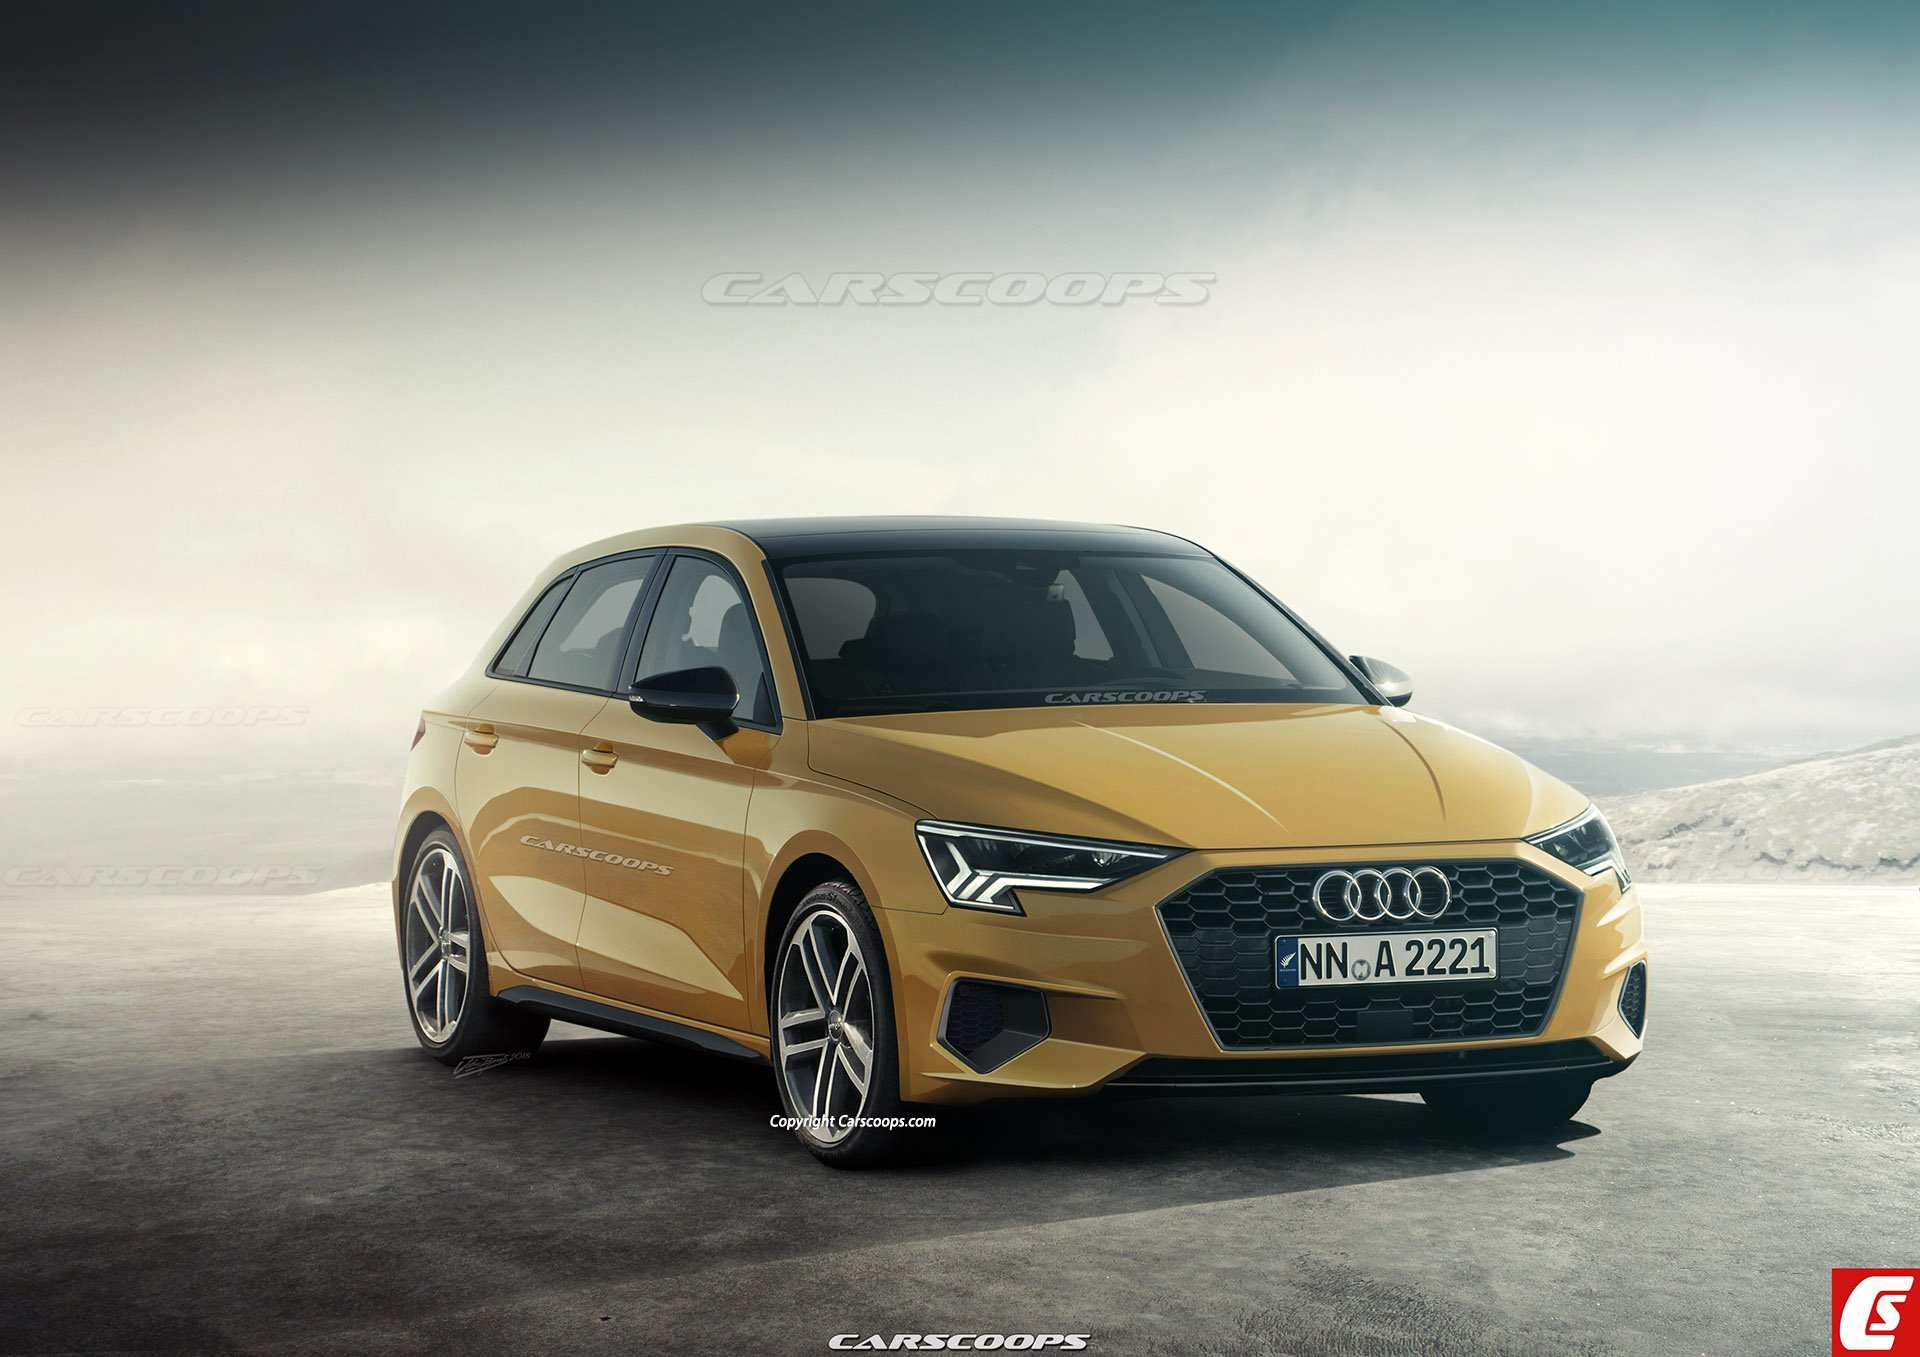 35 Gallery of New 2019 Audi A3 Research New with New 2019 Audi A3